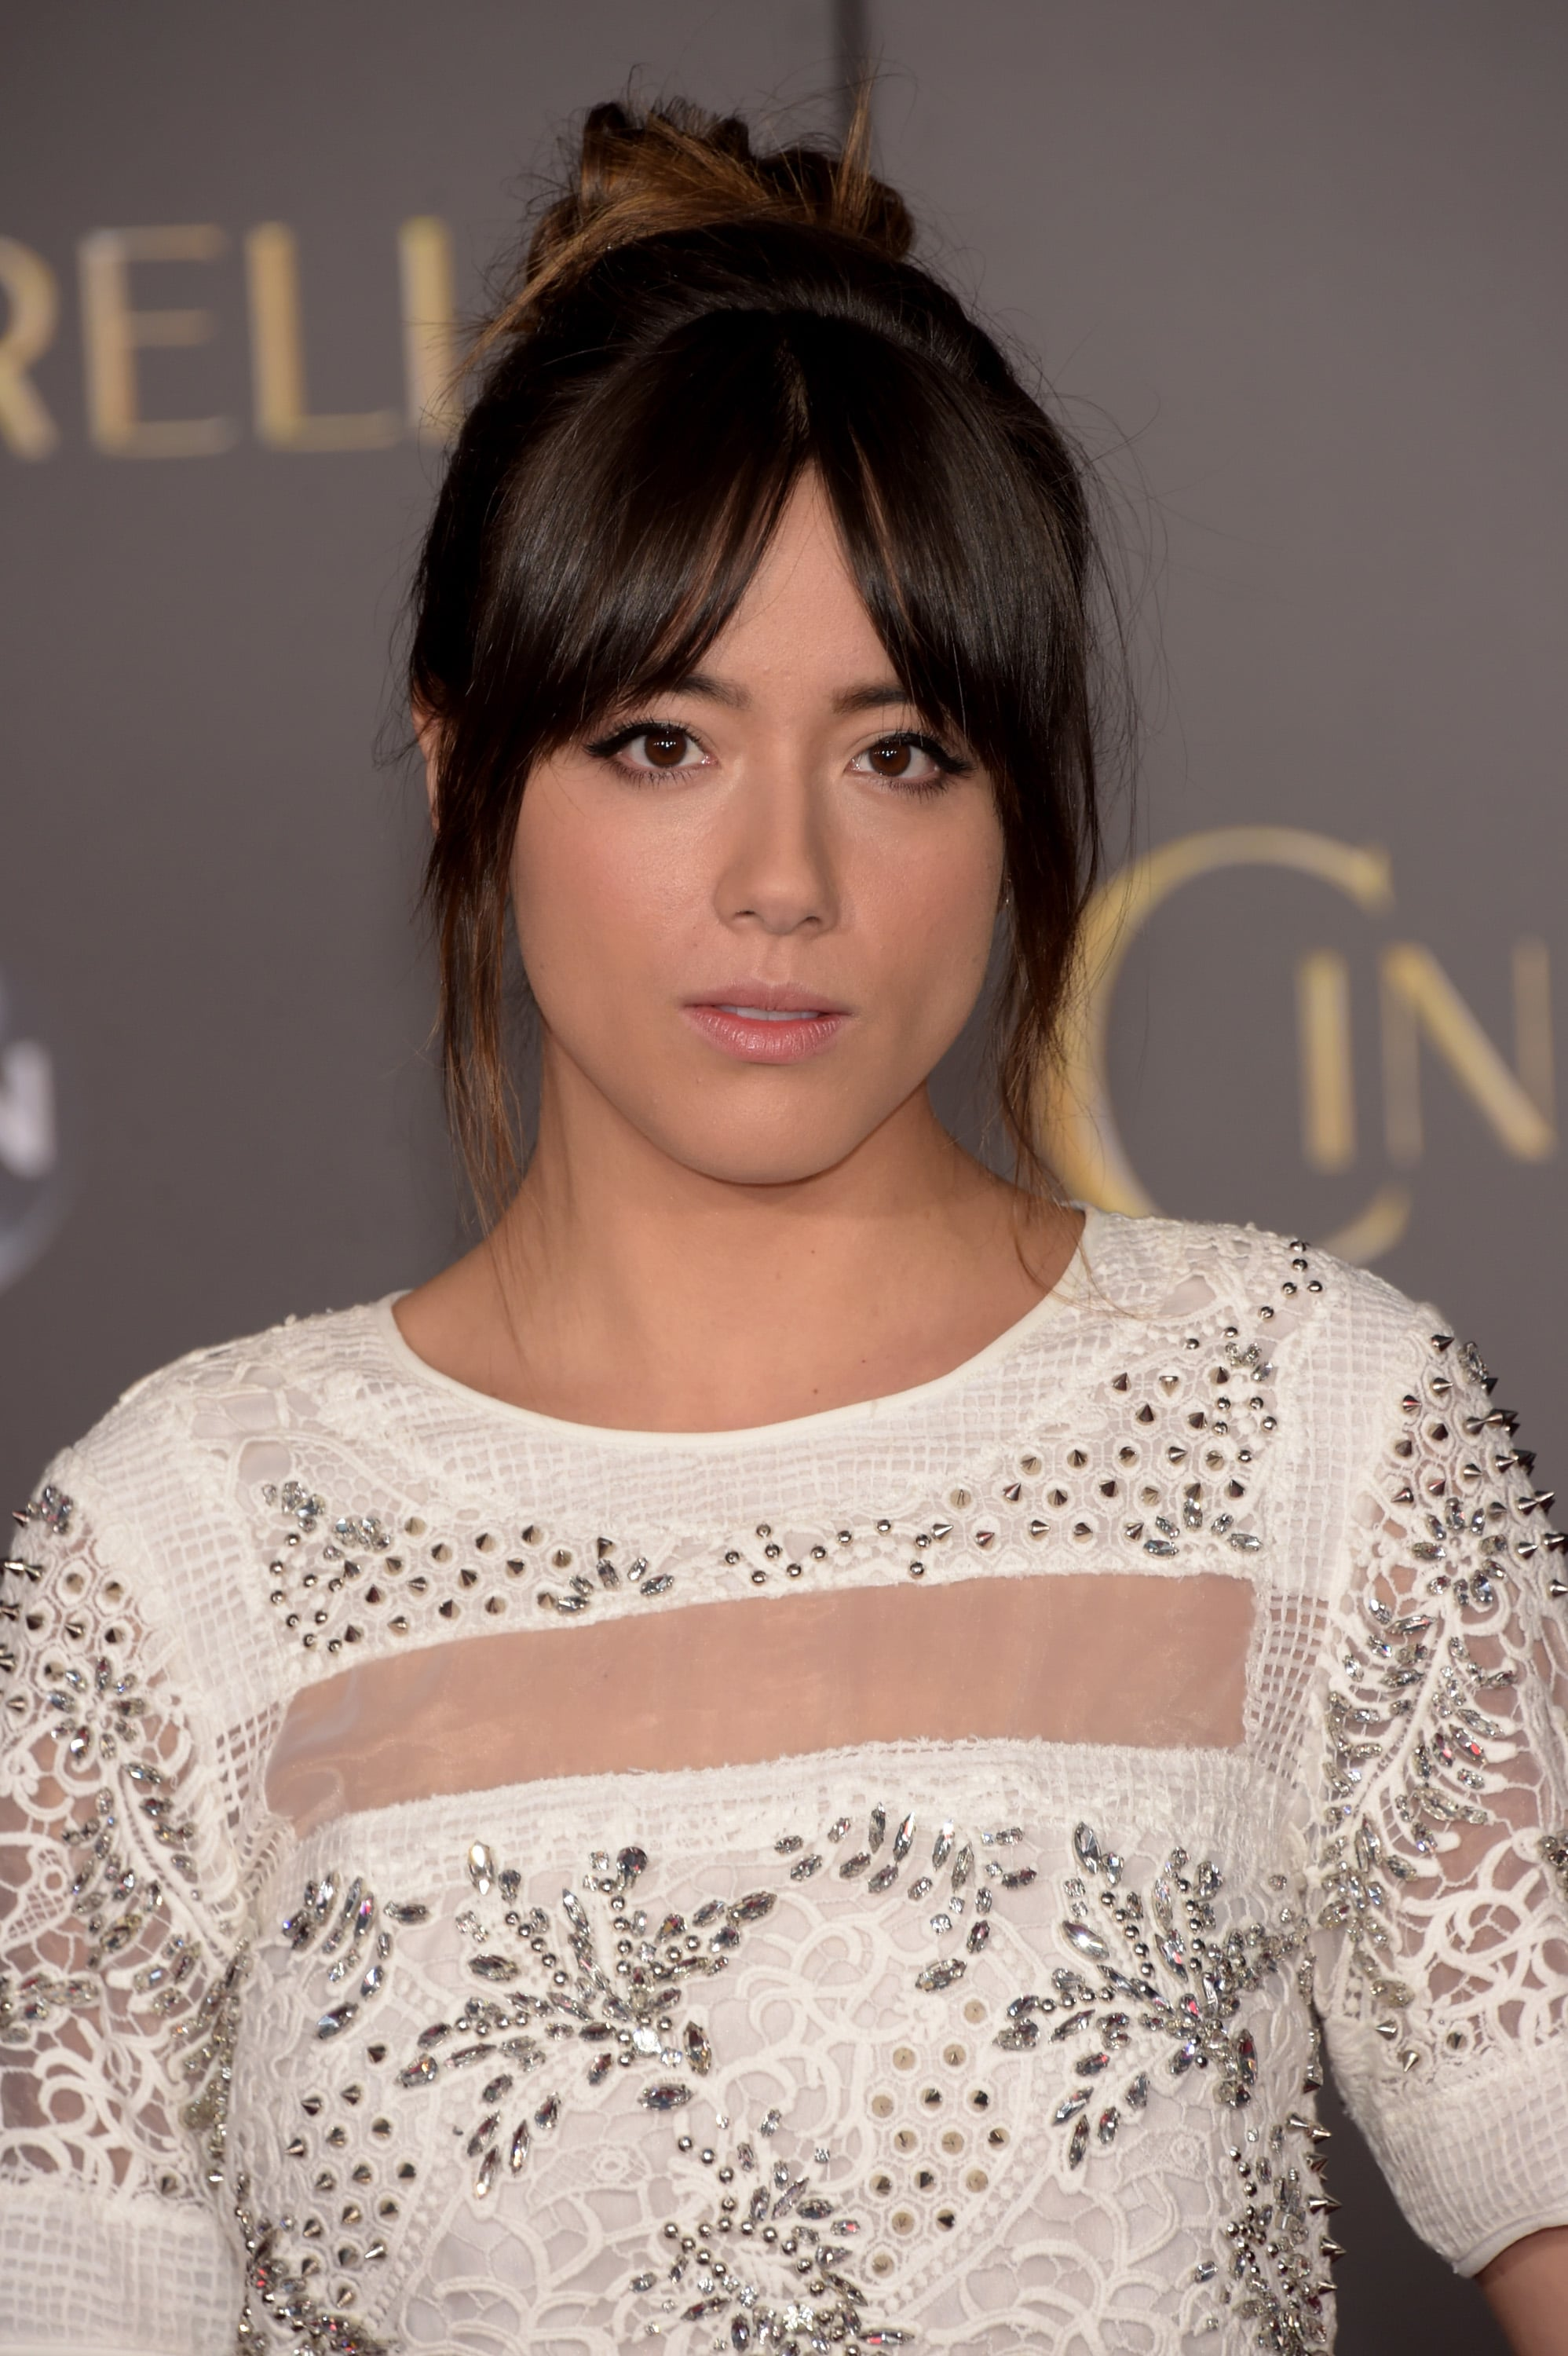 HOLLYWOOD, CA - MARCH 01:  Actress Chloe Bennet attends the premiere of Disney's